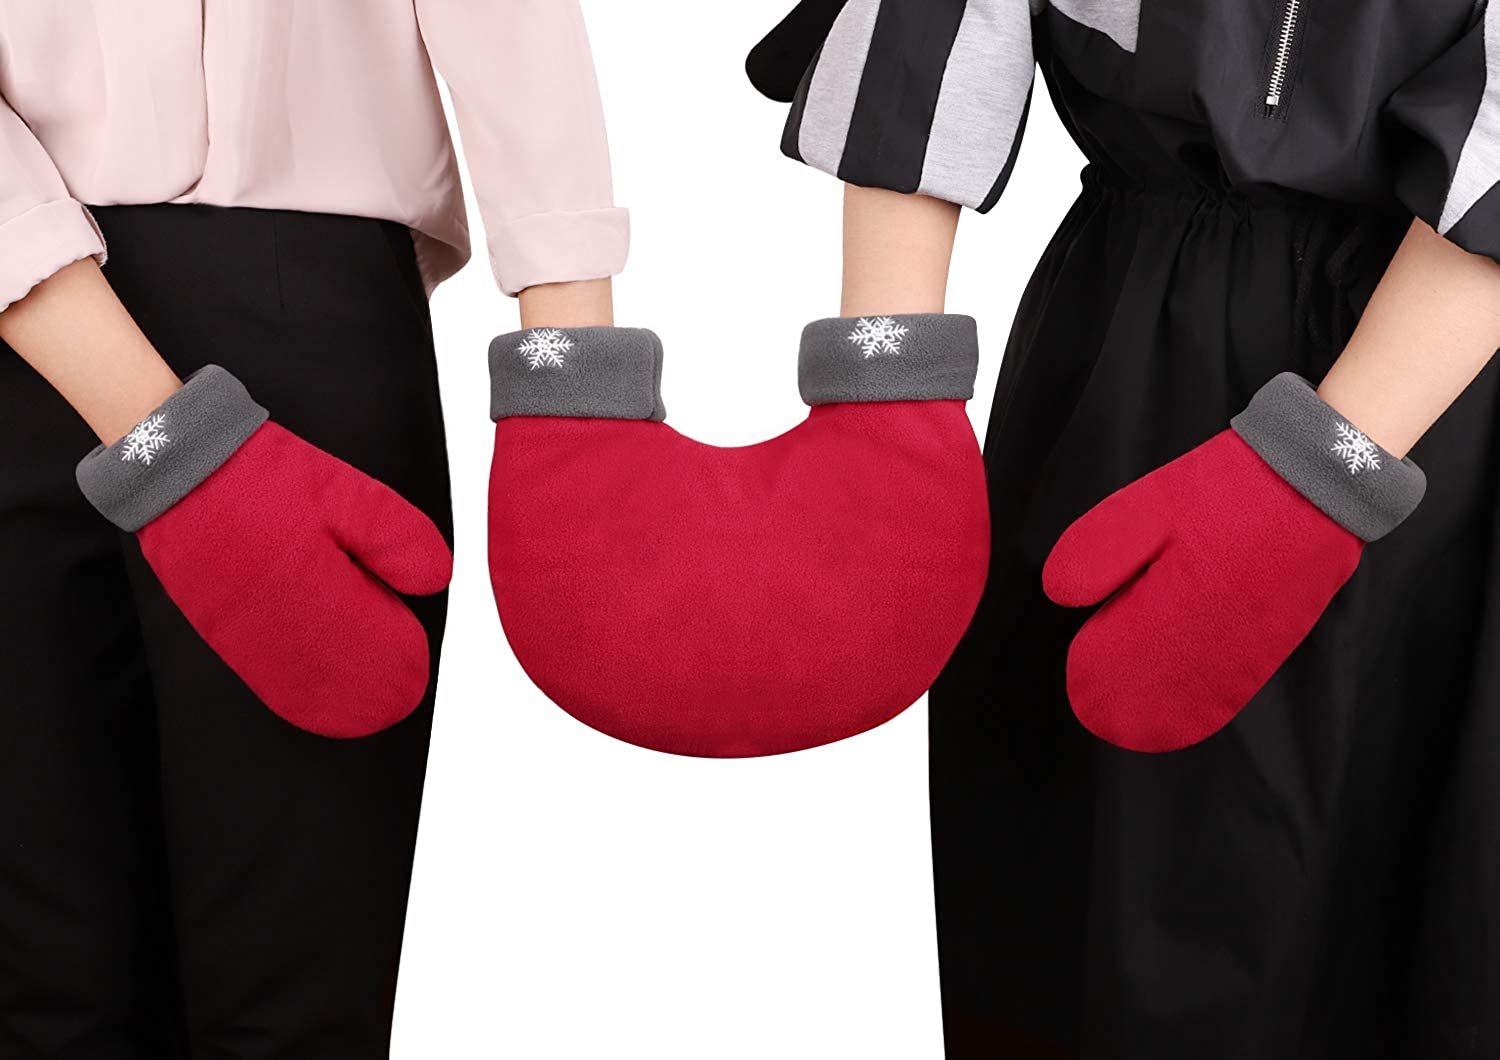 Hand in Max 63% OFF Mitten Couples Lovers Holida Save money Christmas Parent Child